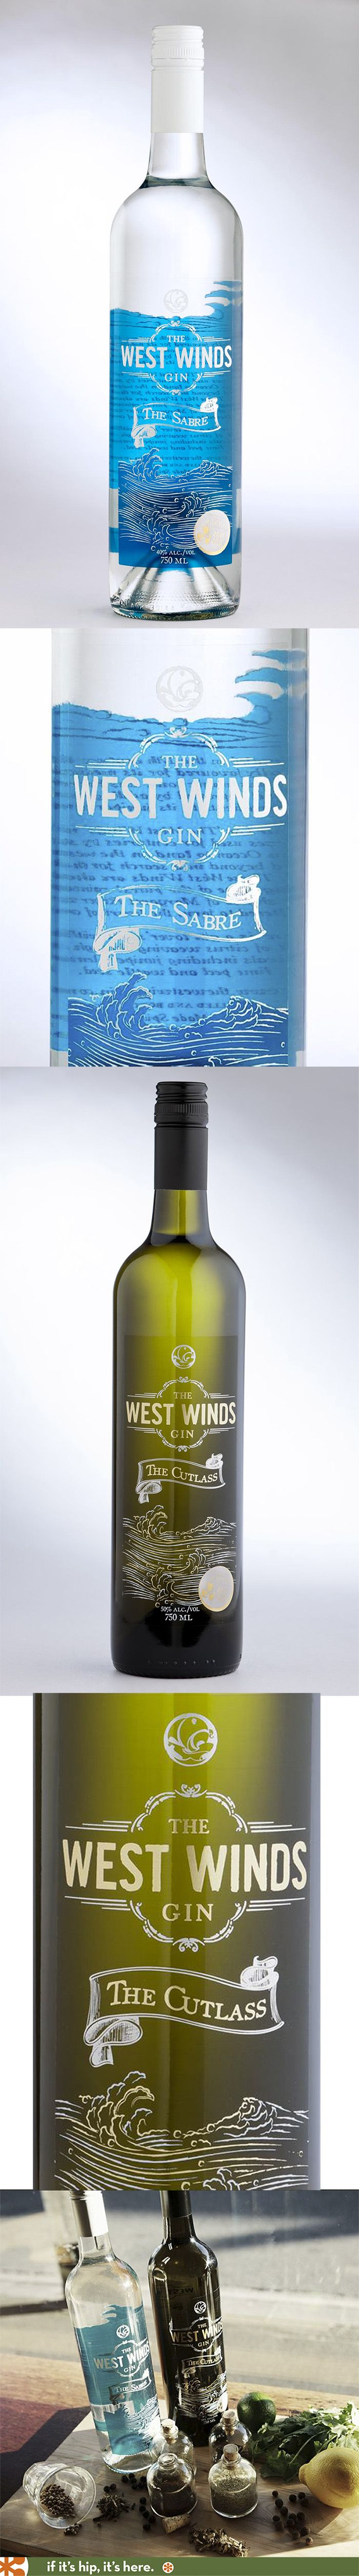 The West Wind Gin Bottles (Sabre and Cutlass) from Australia